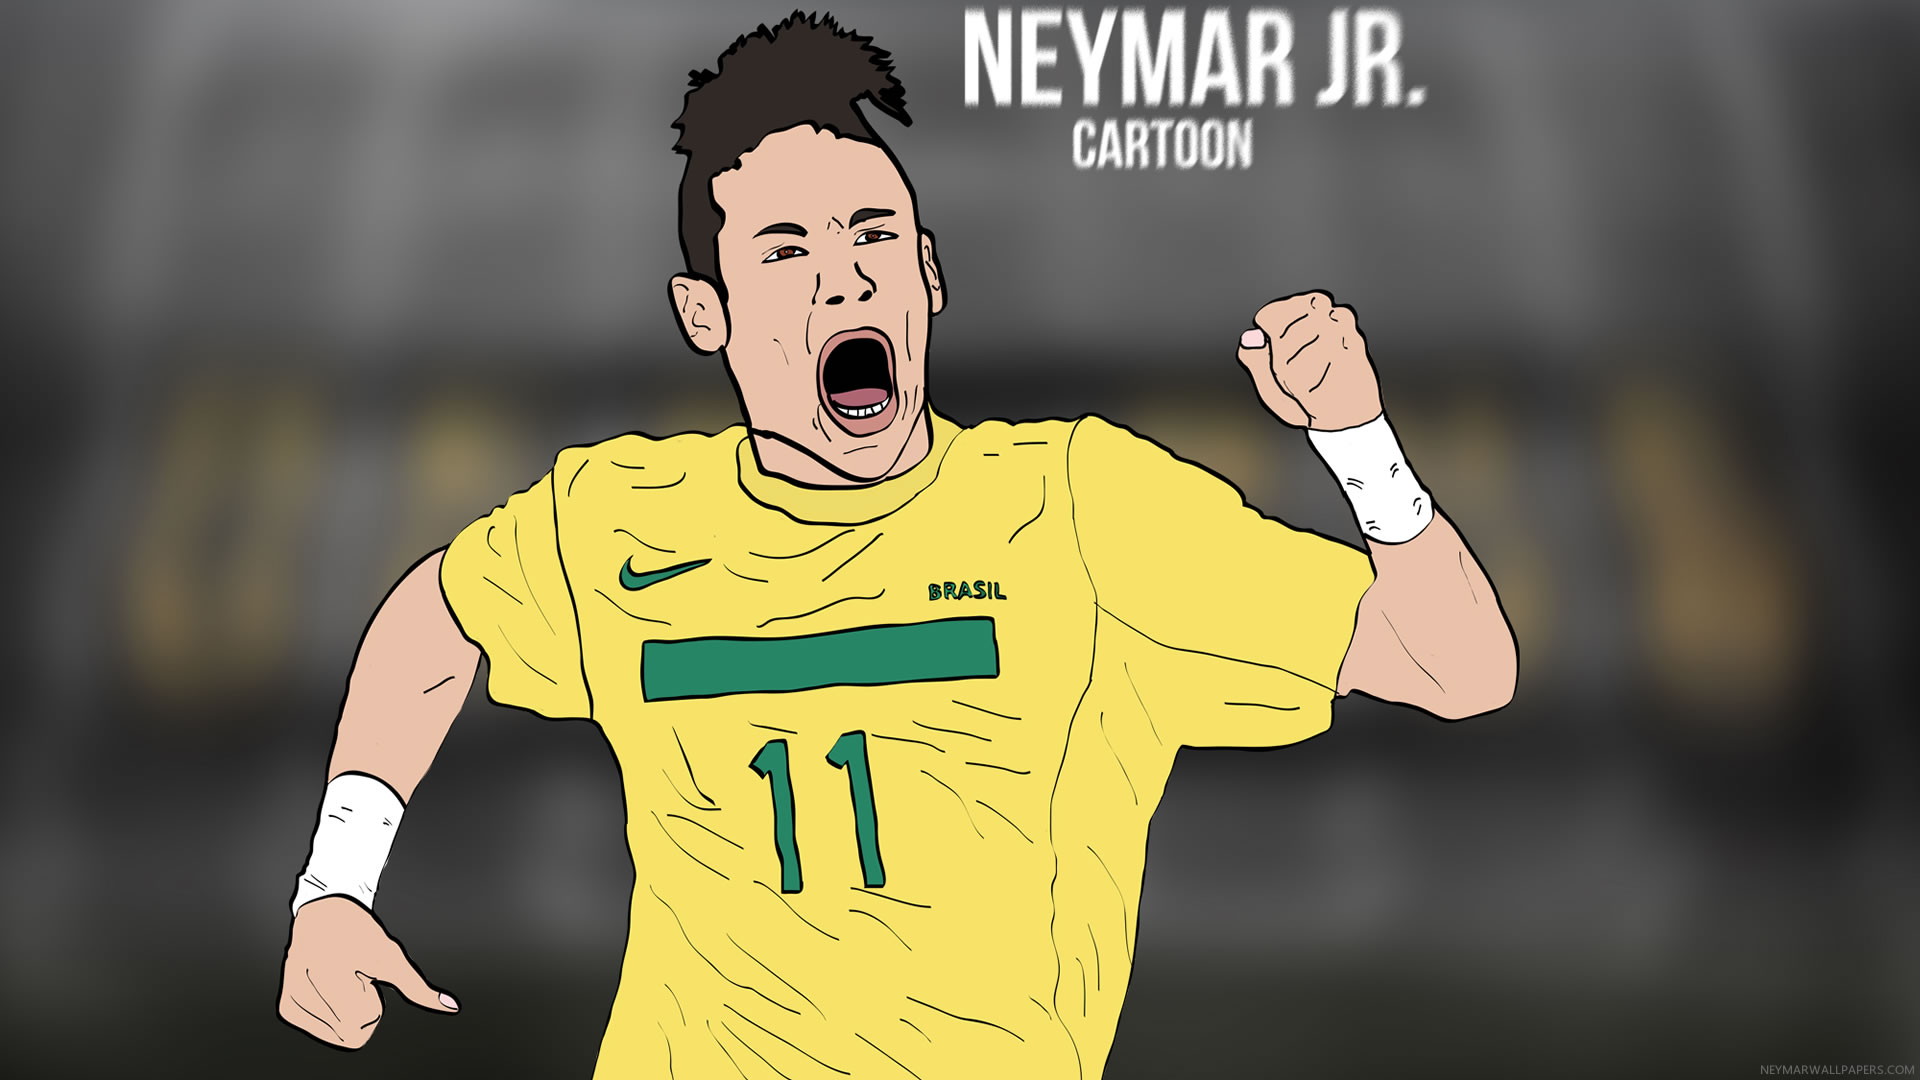 Neymar Jr Cartoon Wallpaper By Bluezest1997 Neymar Wallpapers